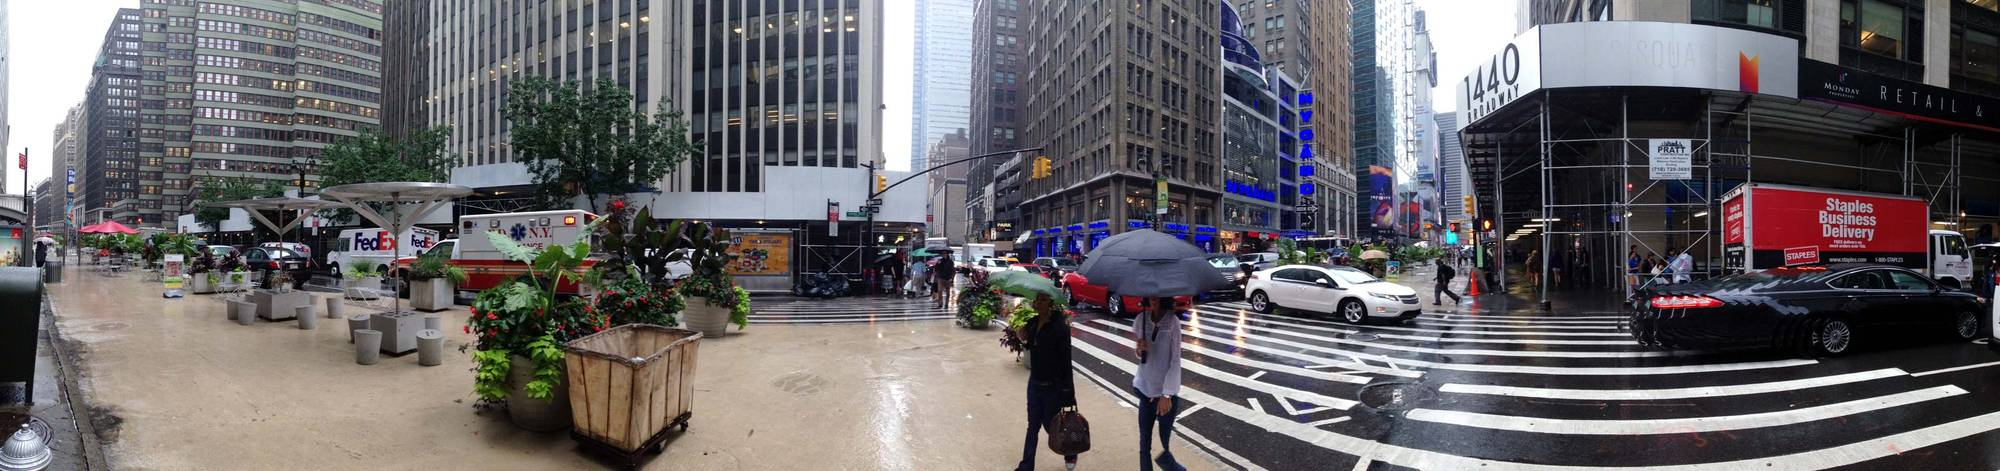 Panorama of Time Square